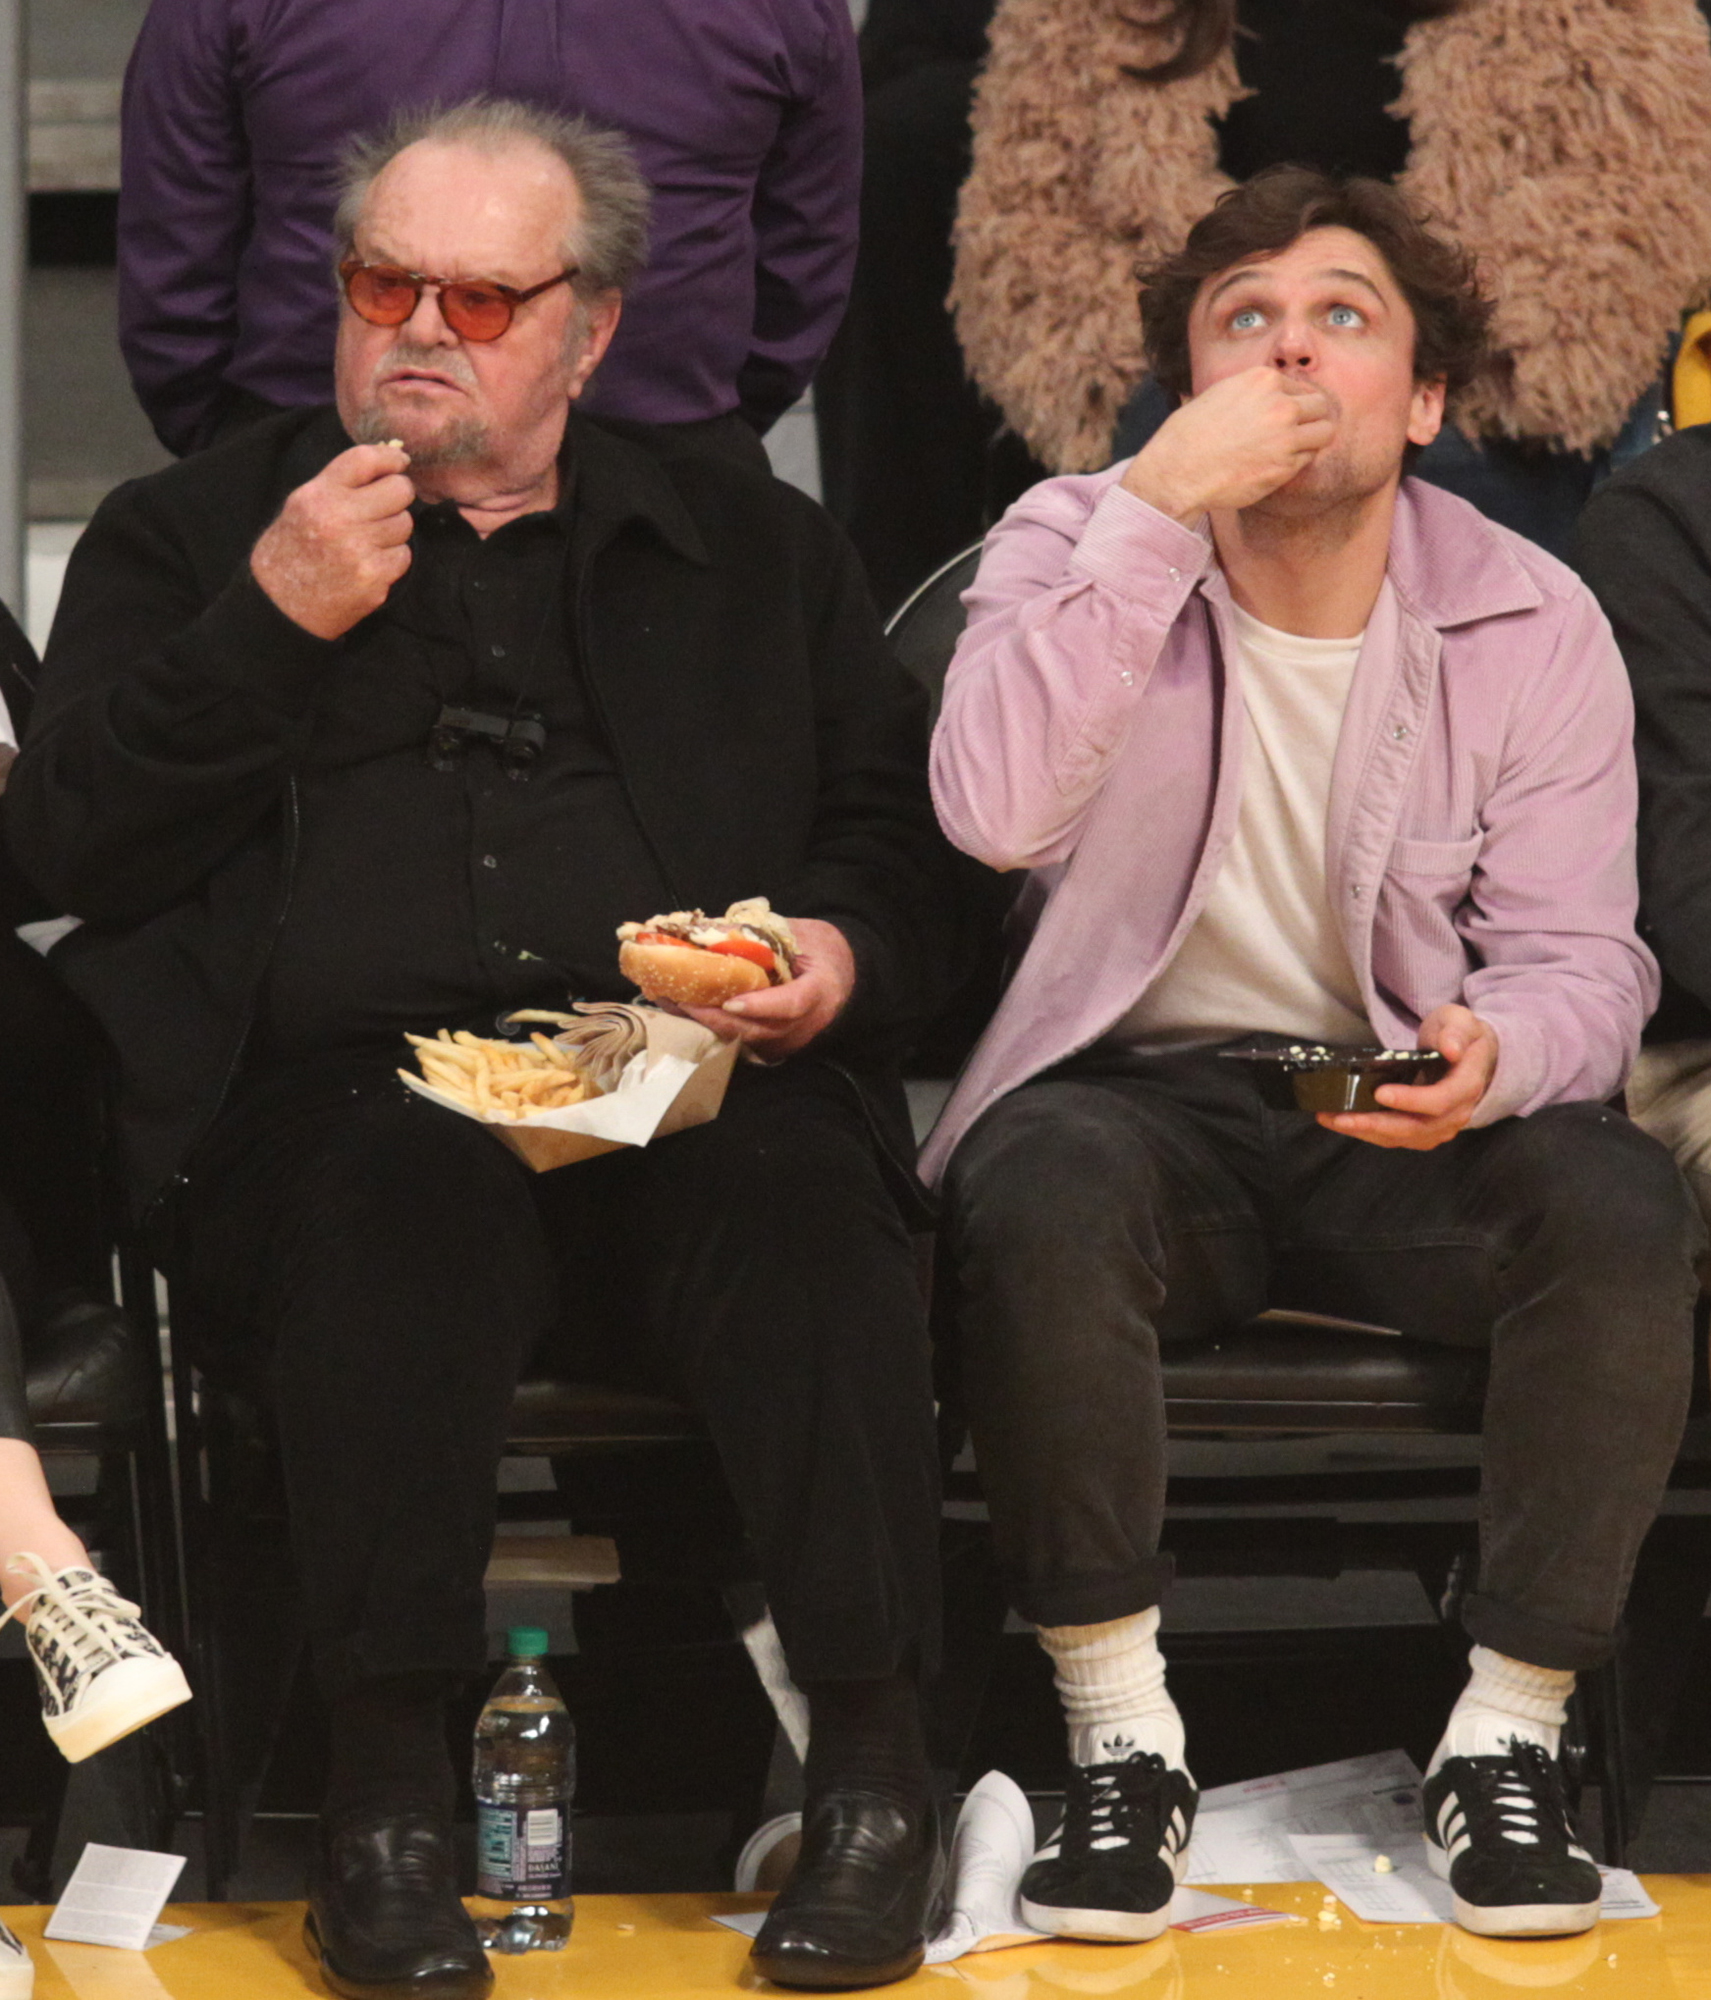 Jack Nicholson 81 Son Ray 26 Cheer On The Lakers People Com #jacknicholson #nicholson #michellepfeiffer #wolf sony pictures he went out and promoted the film in the states and then in england and europe. https people com movies jack nicholson son ray court side lakers warriors